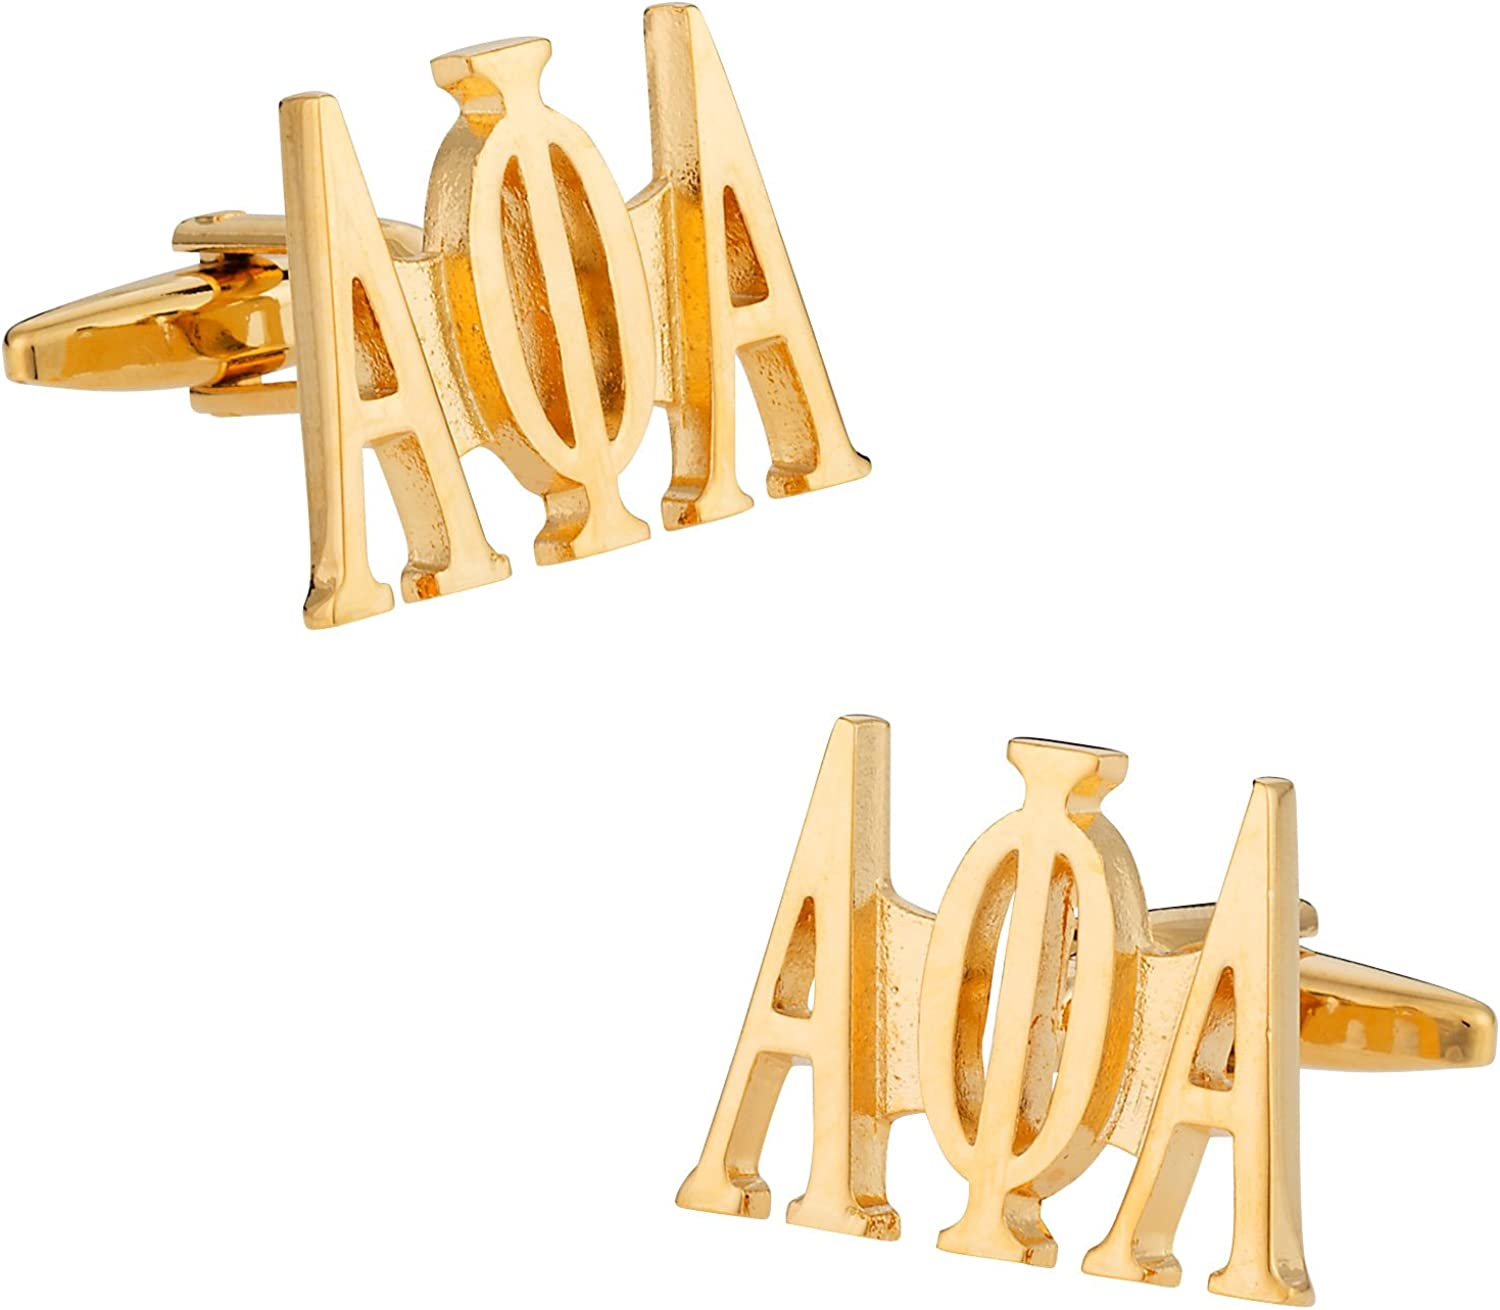 Cuff-Daddy Alpha Phi Alpha Cufflinks in Gold with Presentation Box